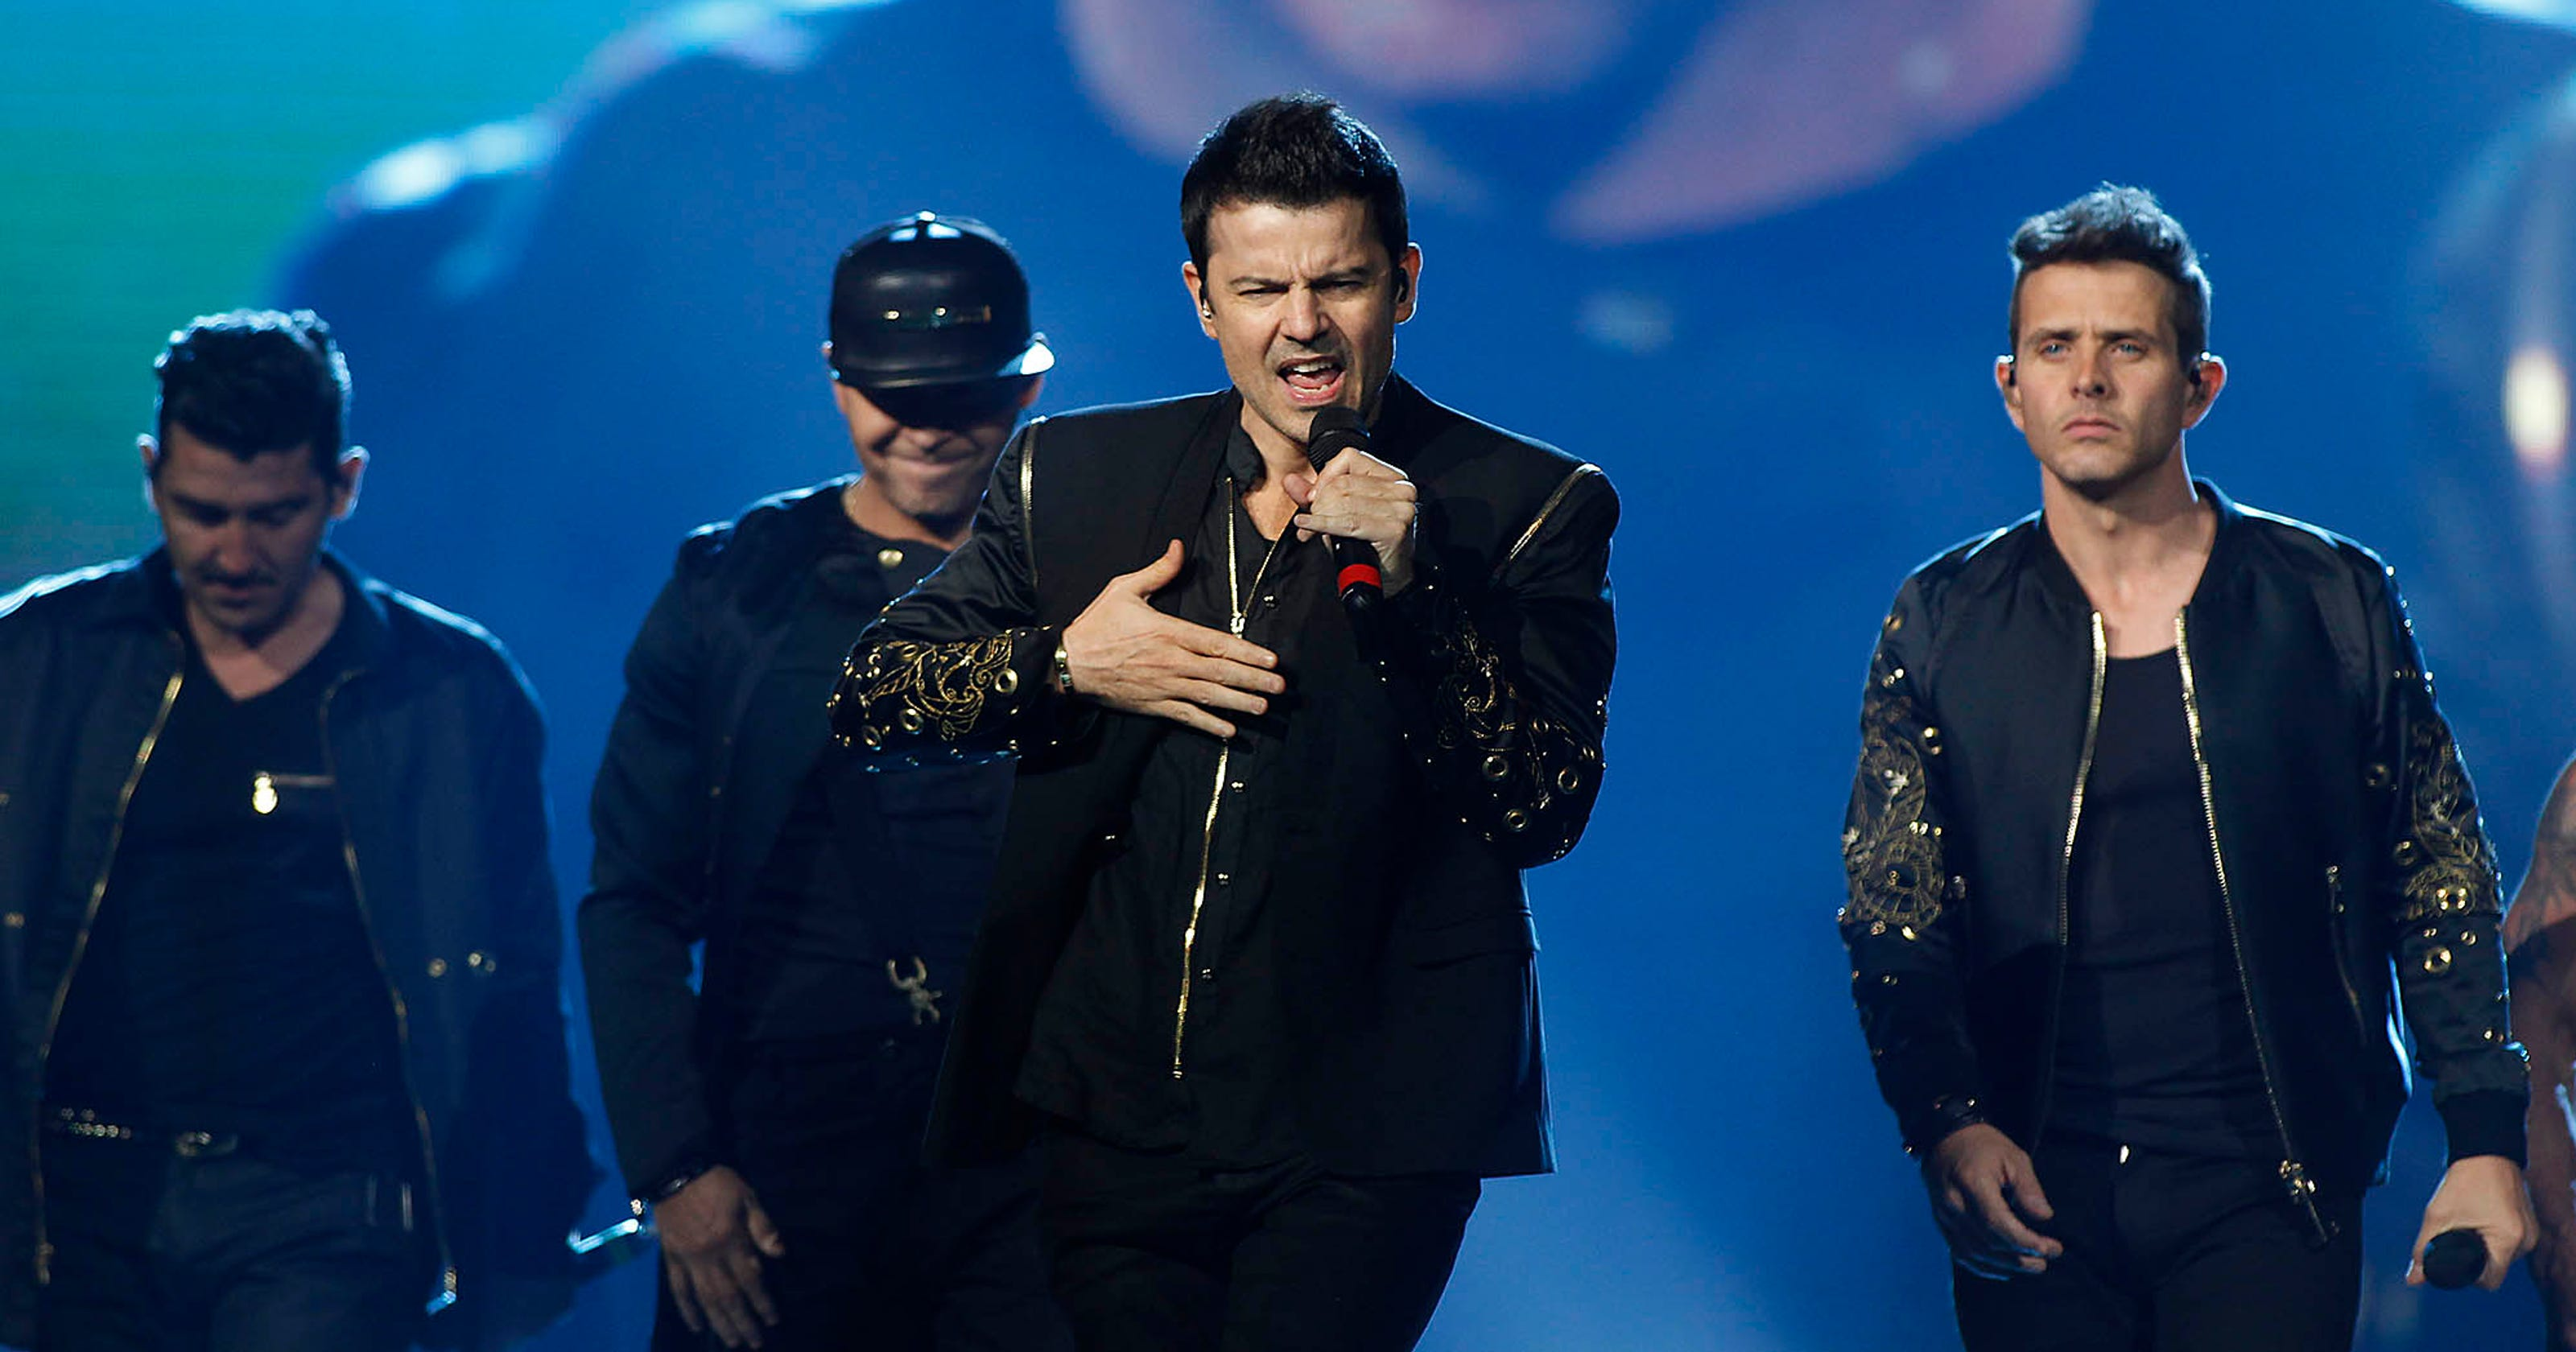 Review: Have New Kids on the Block still got the right stuff?